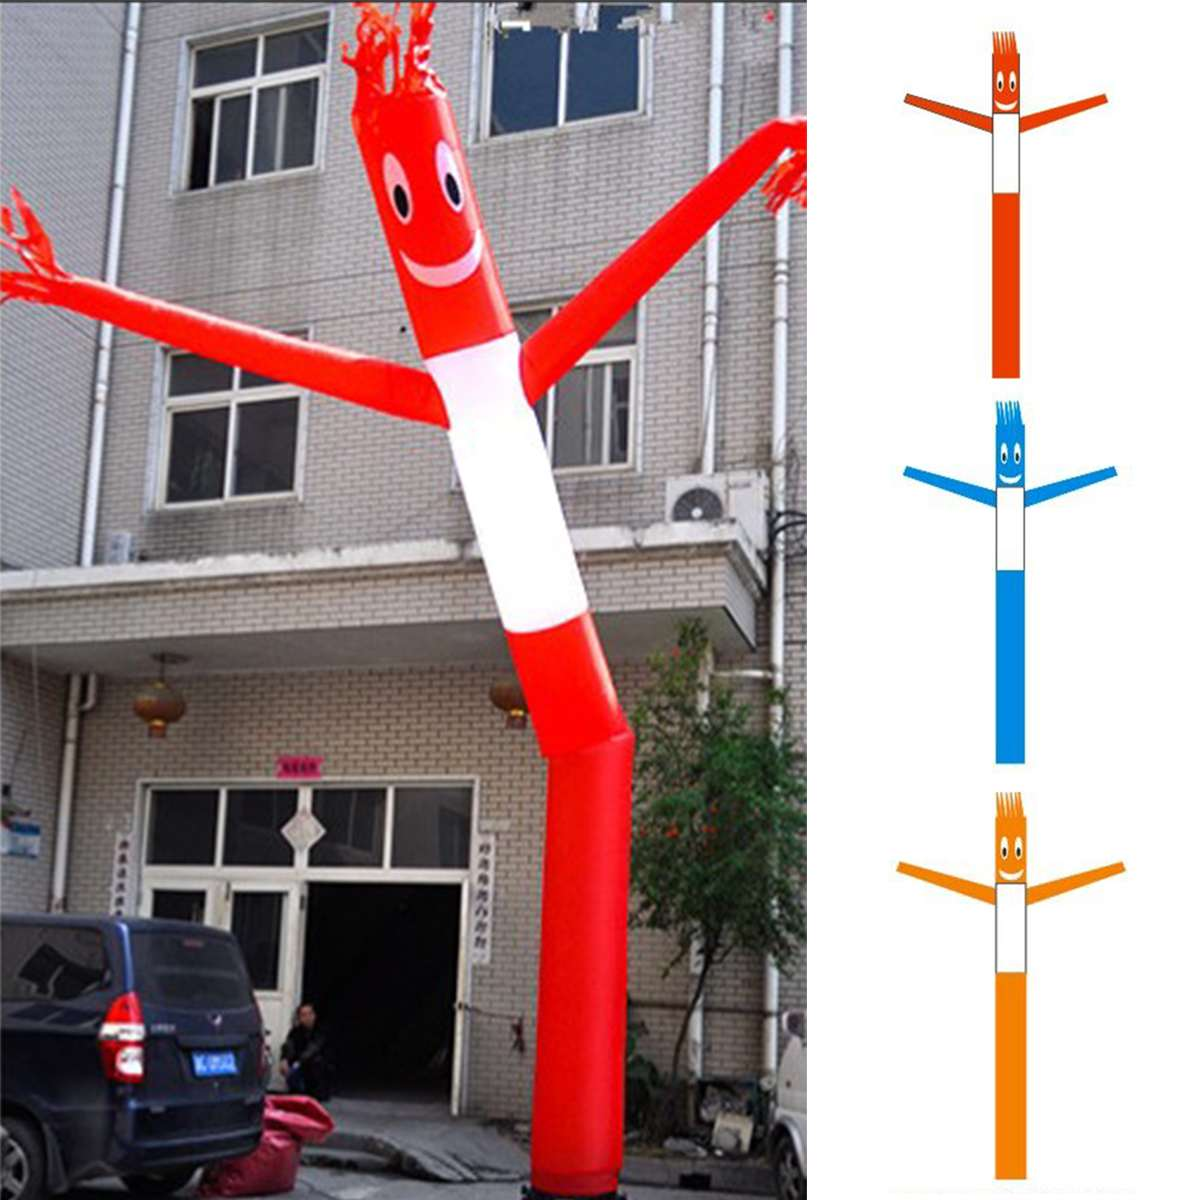 3m/6m Inflatable Advertising Air Sky Human Dancers Tube Puppet Flag Wavy Man Wind Dancers Carton Advertsing Dancing Model Toy